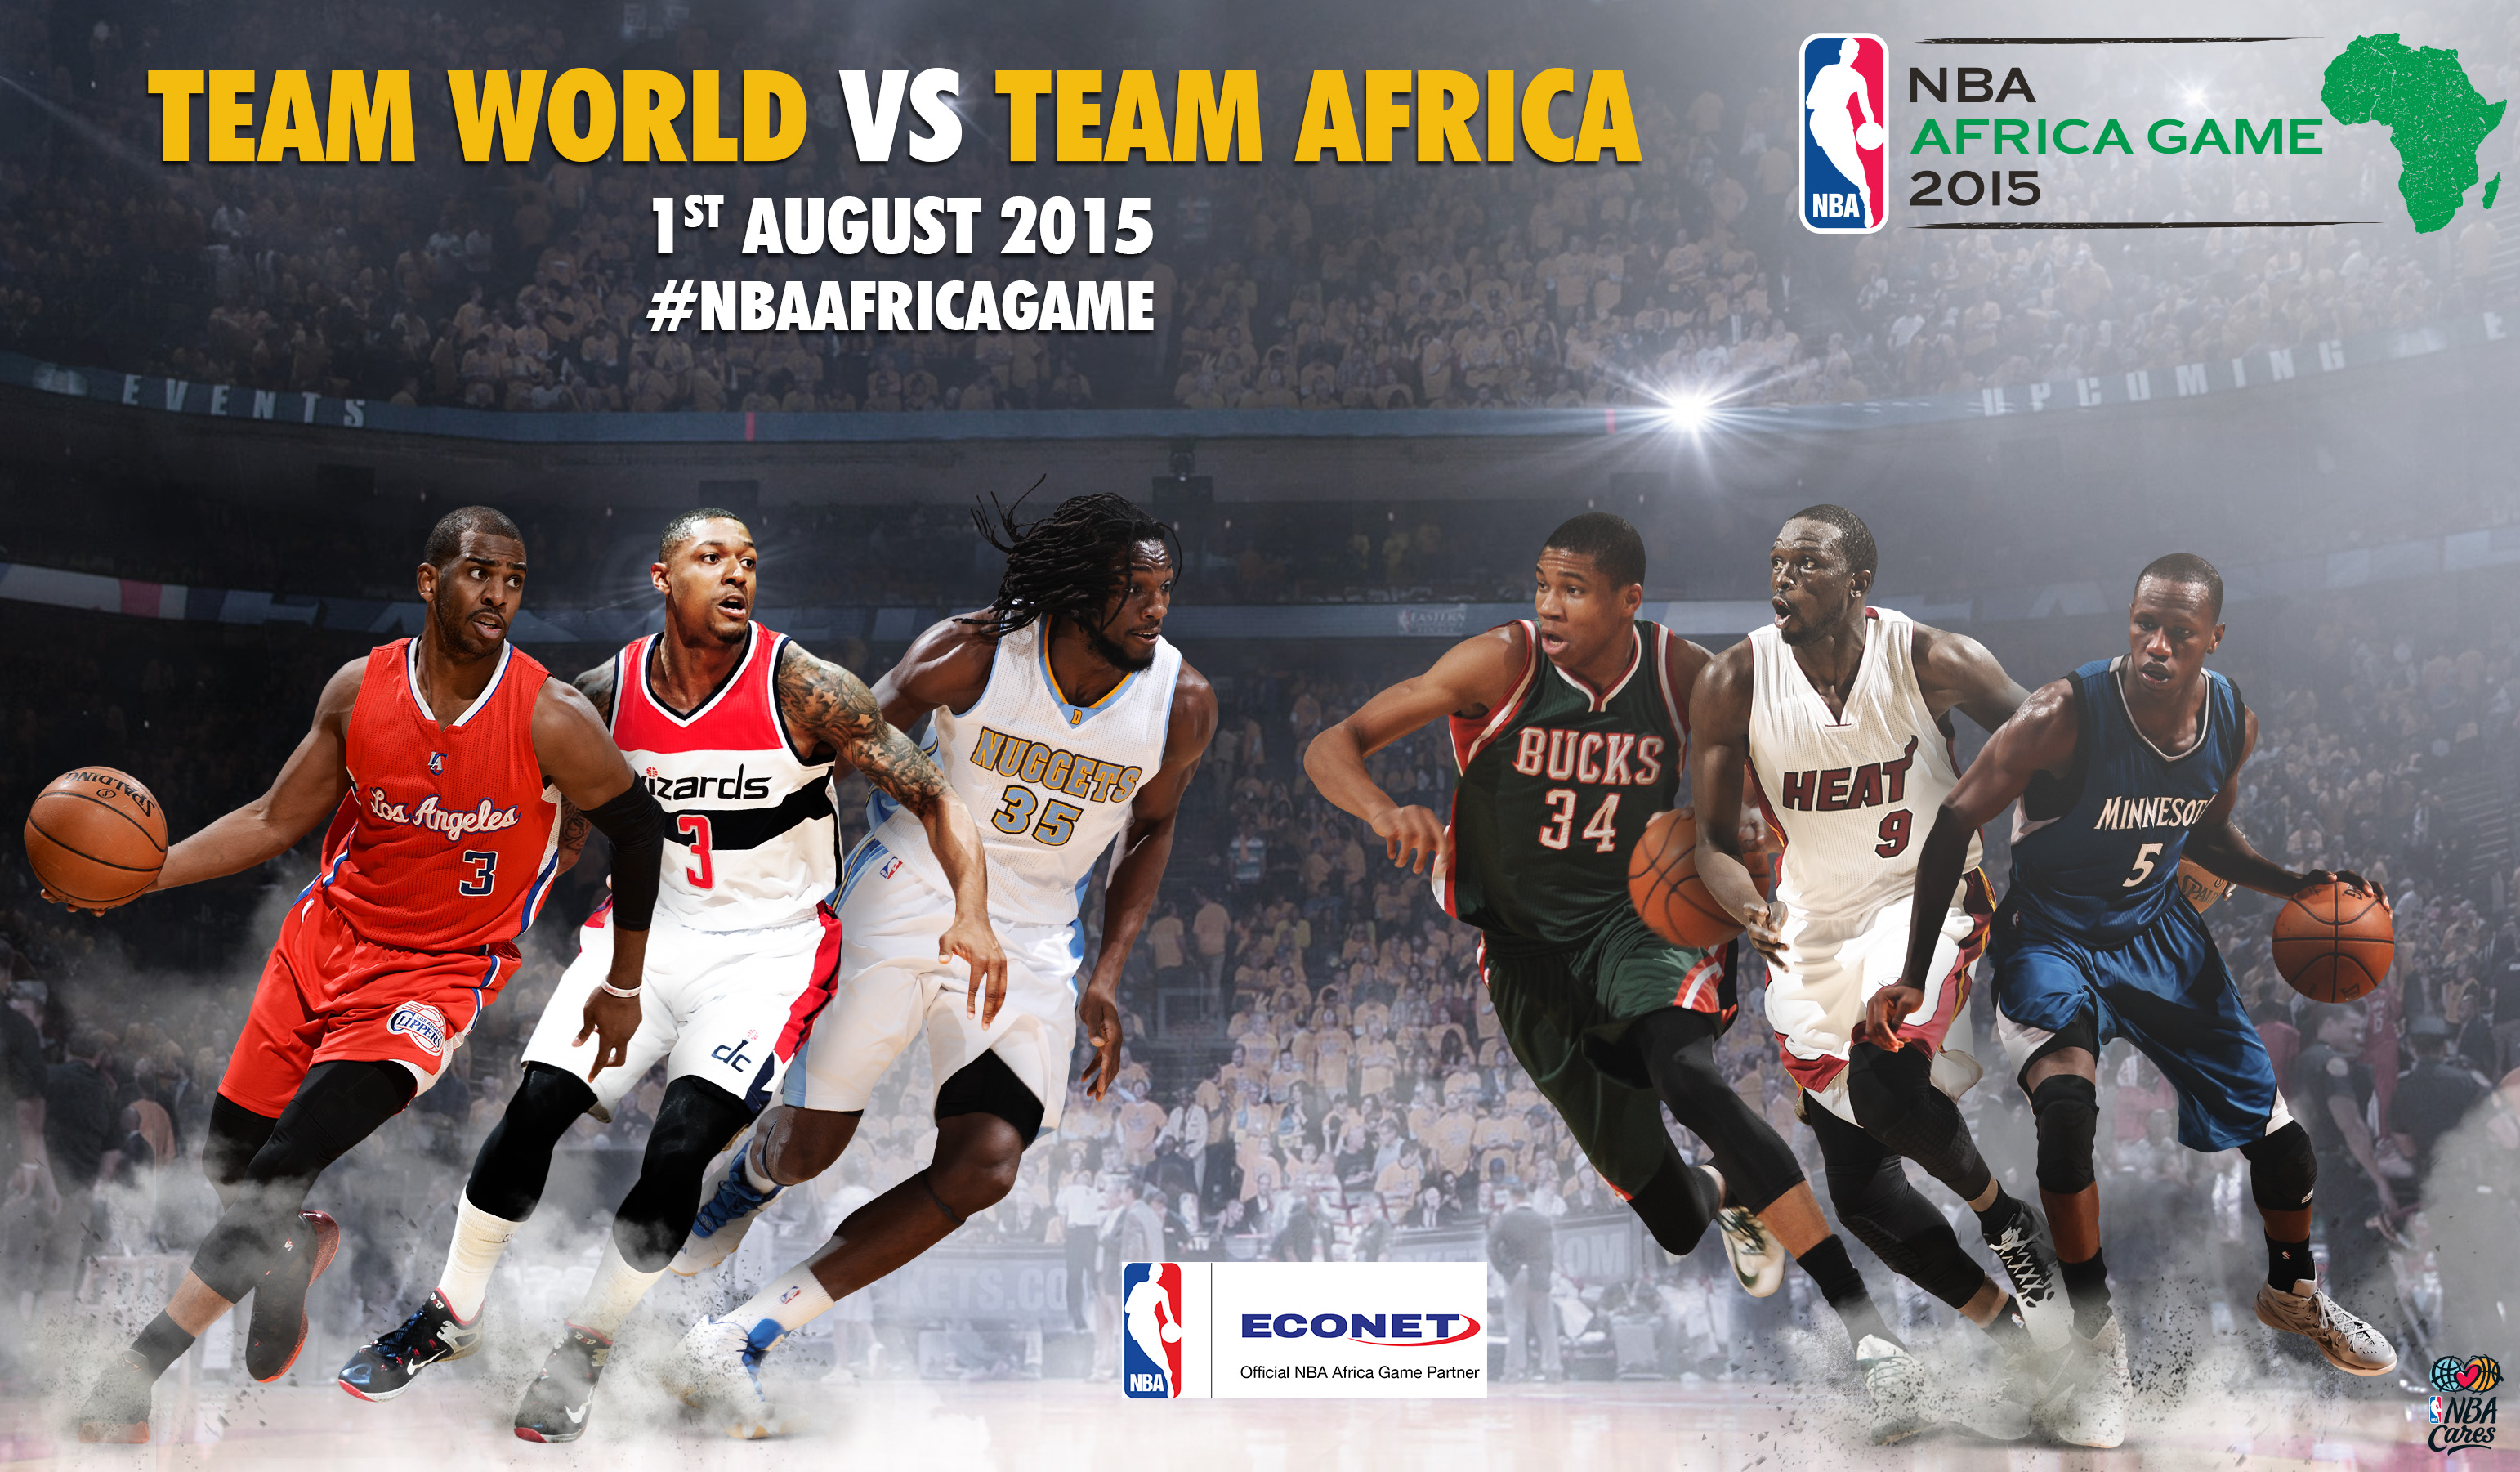 NBA's First Game In Africa Attracts World-Class Partners